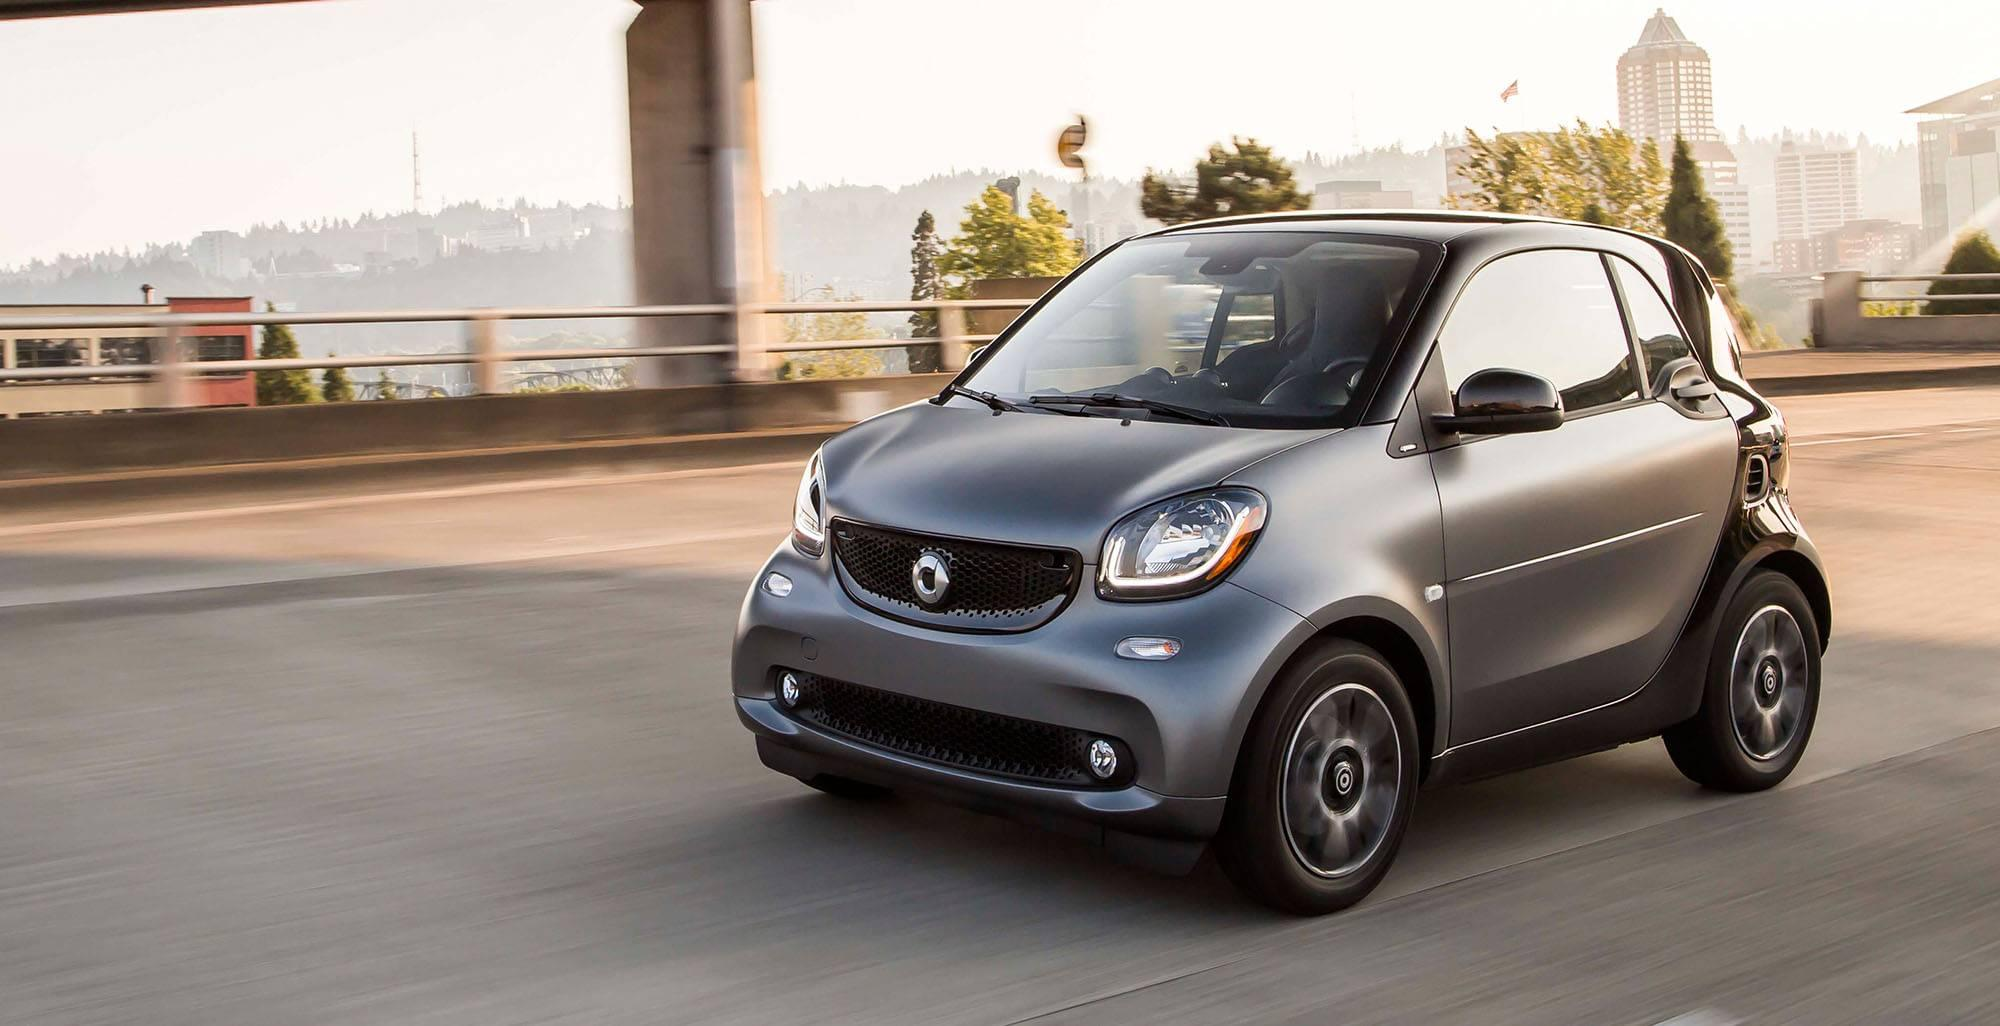 Get to Know the Smart Proxy Coupe Fortwo